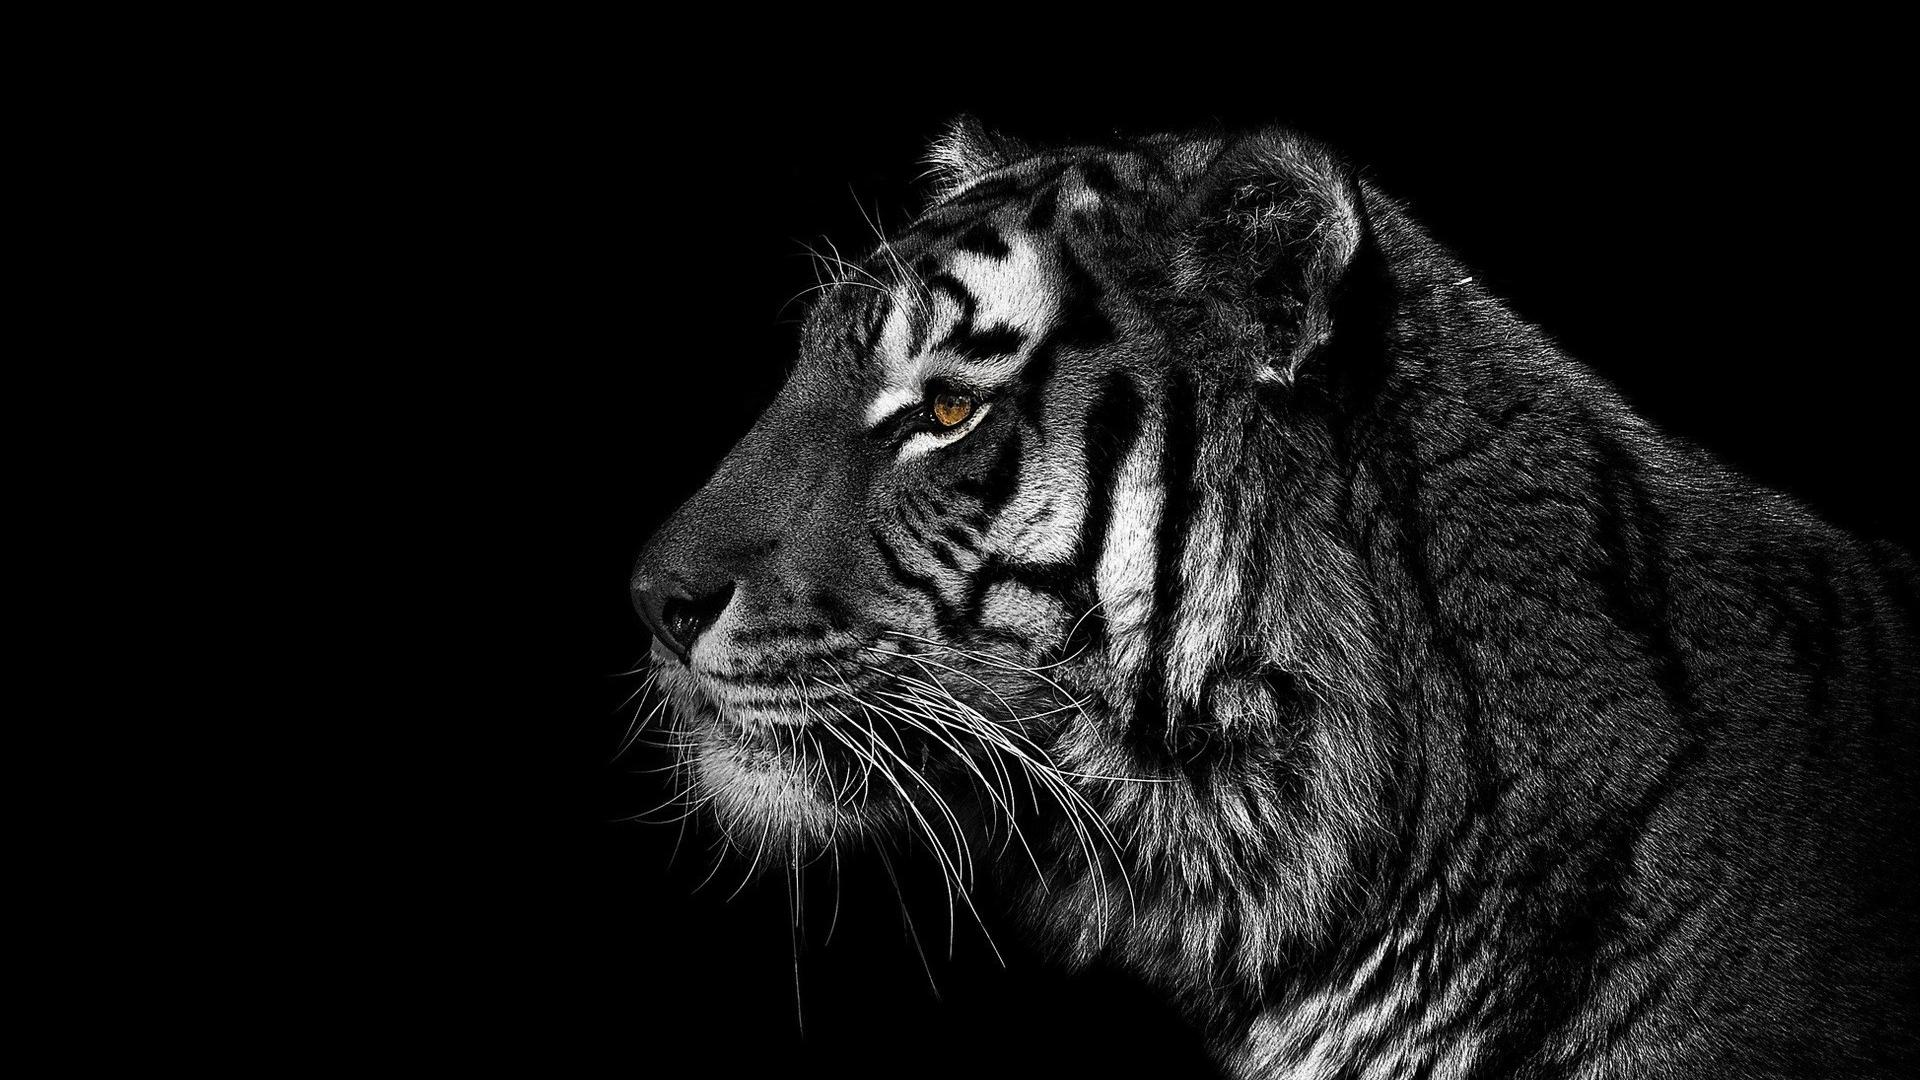 download Black and white animals tigers wallpaper 82288 1920x1080